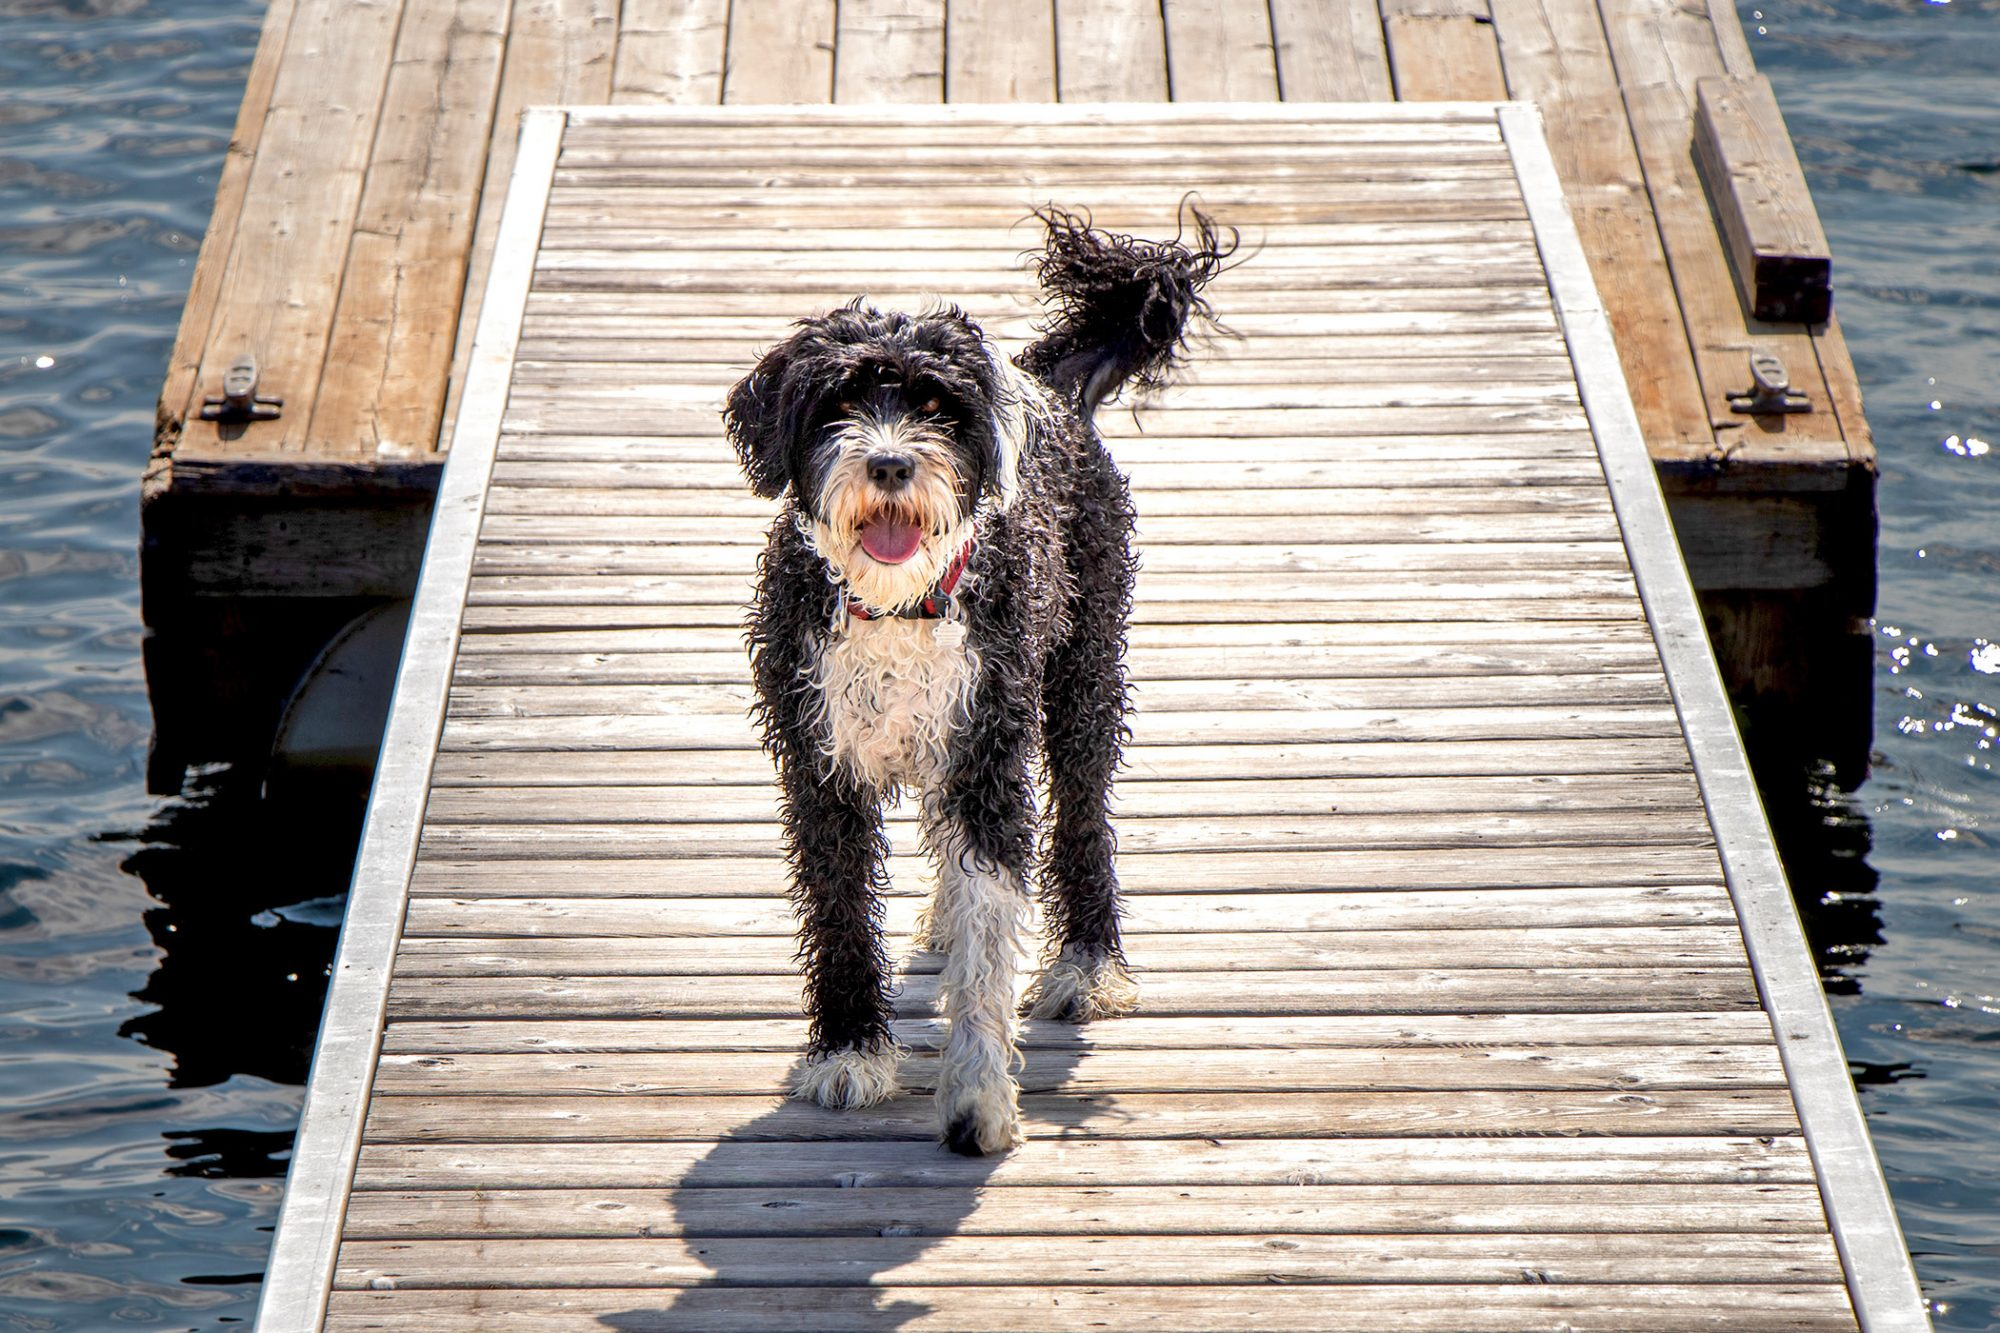 Portuguese Water Dog on dock